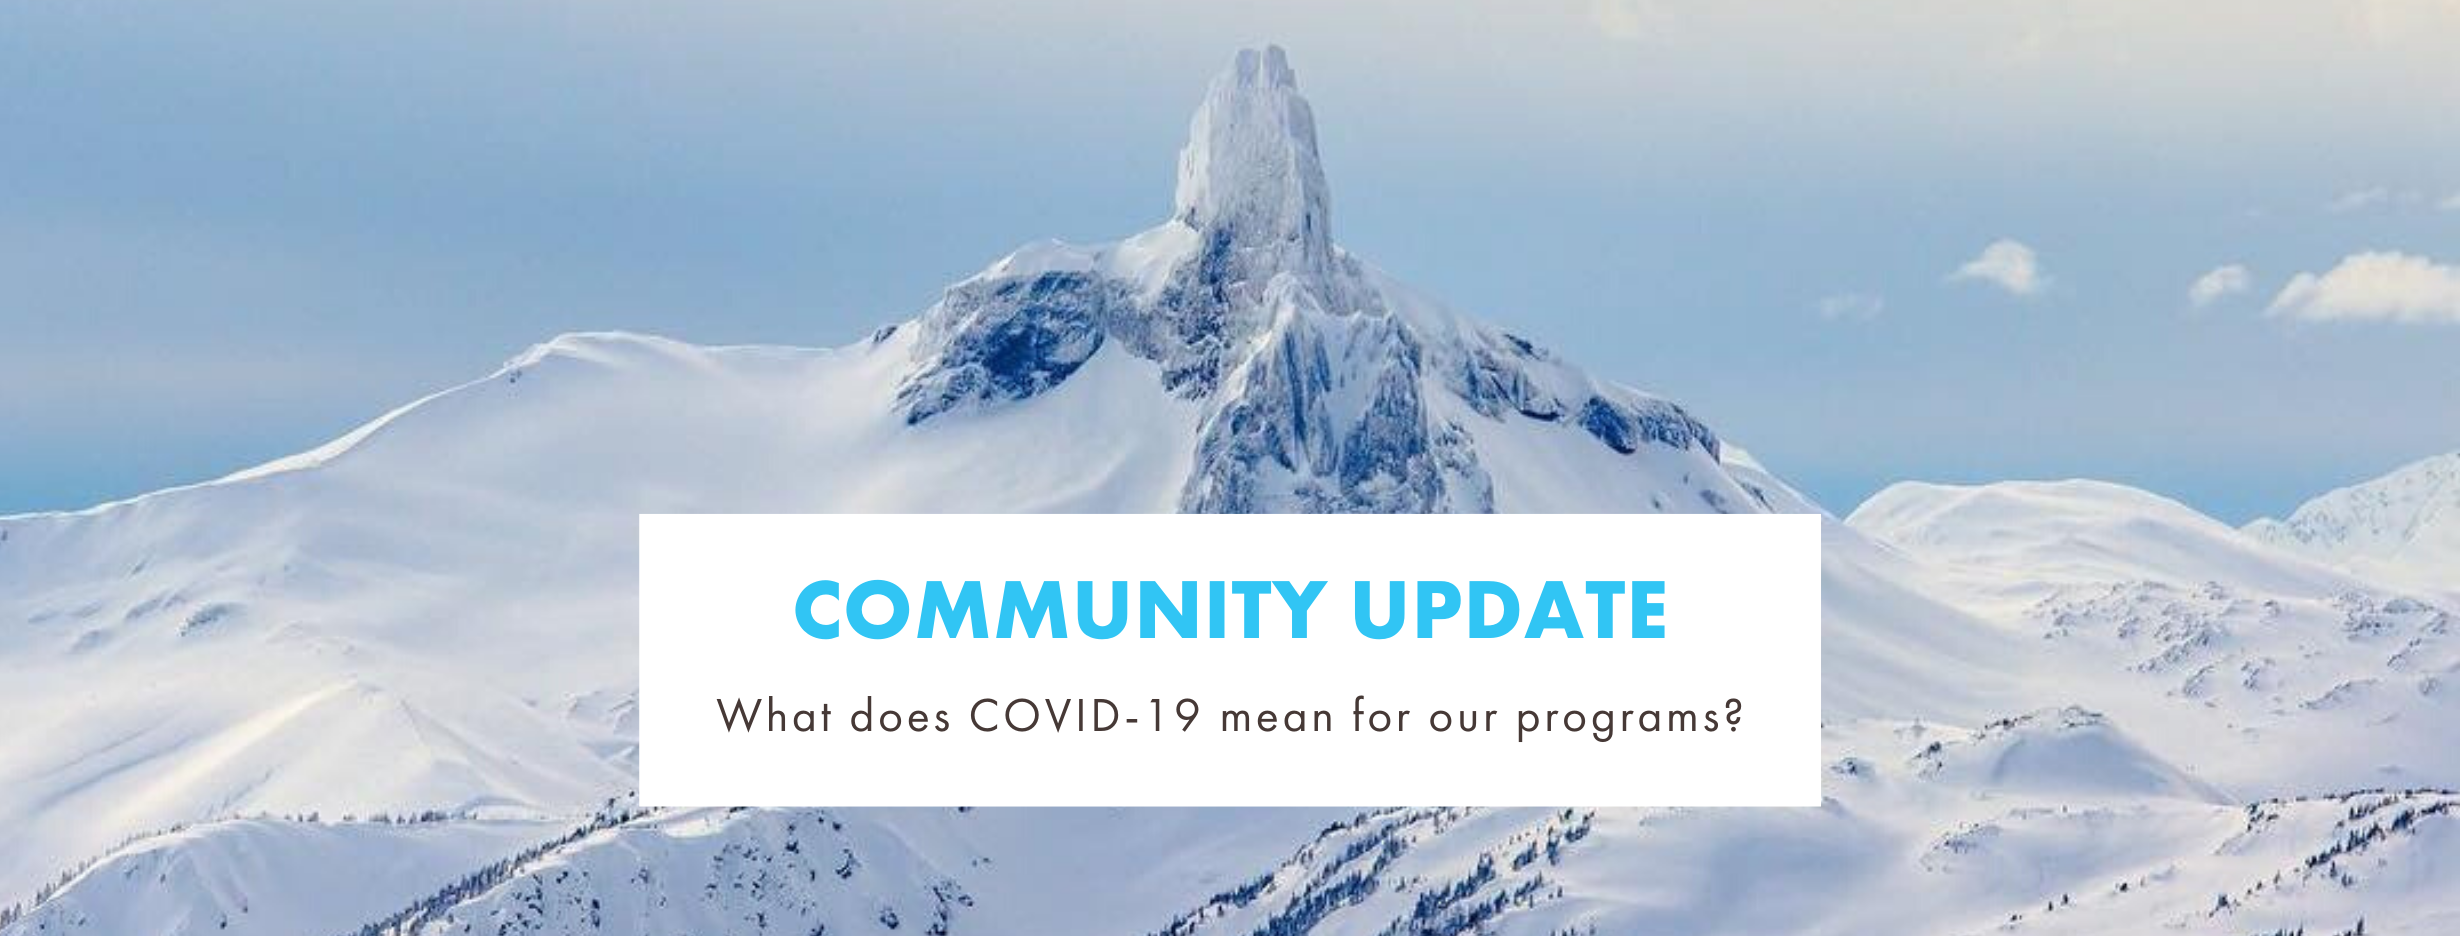 Community Update: What does COVID-19 mean for our programs?